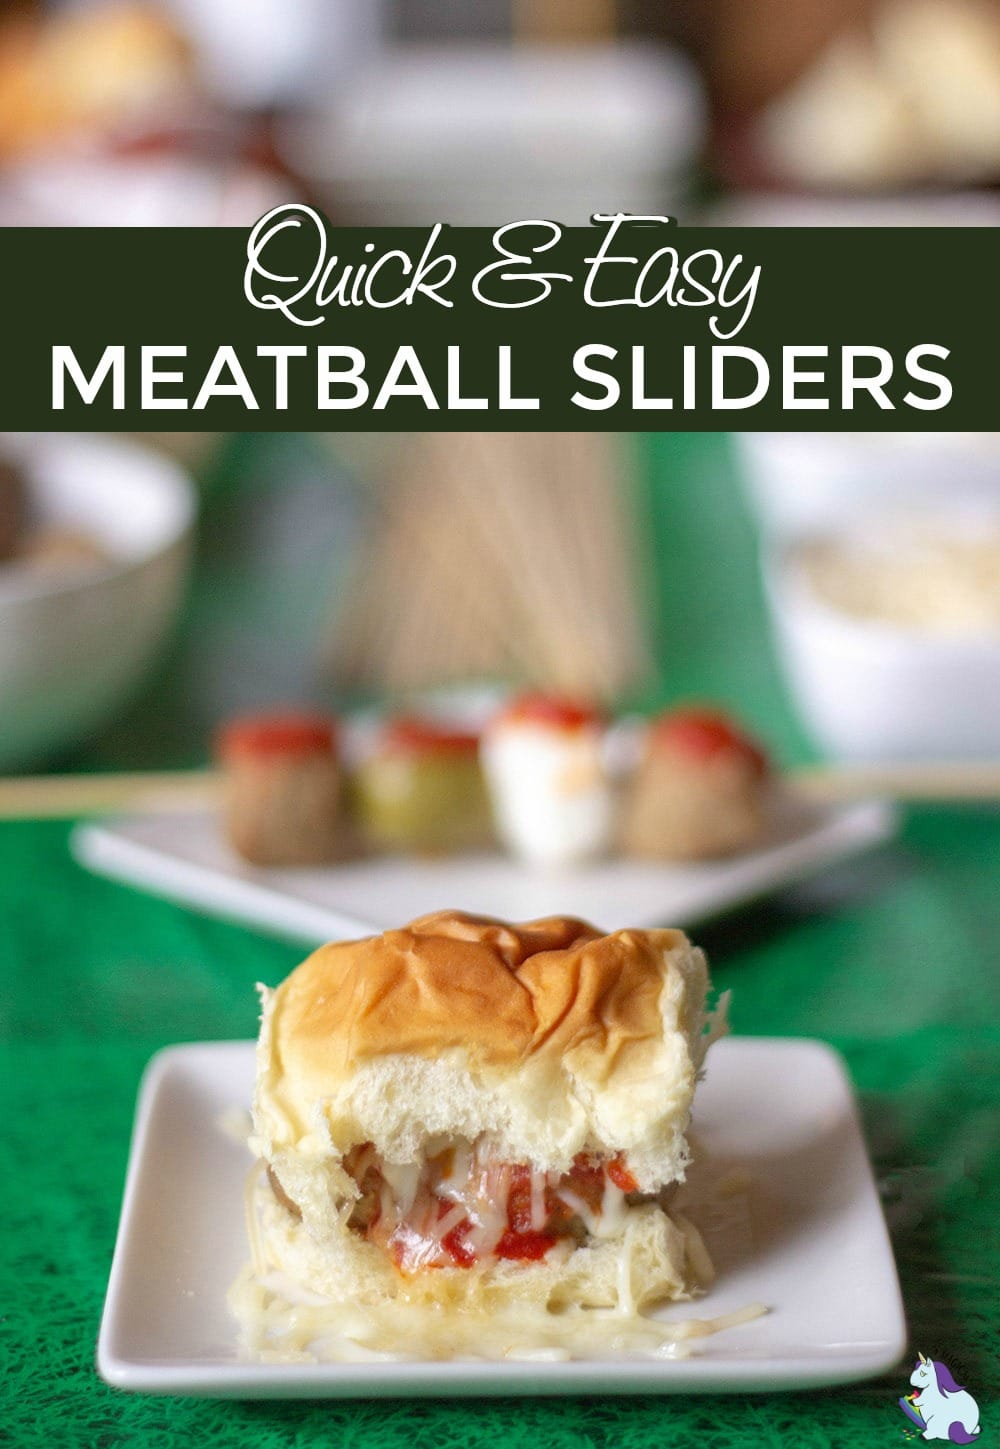 Meatball slider with cheese on a table decorated for game day.